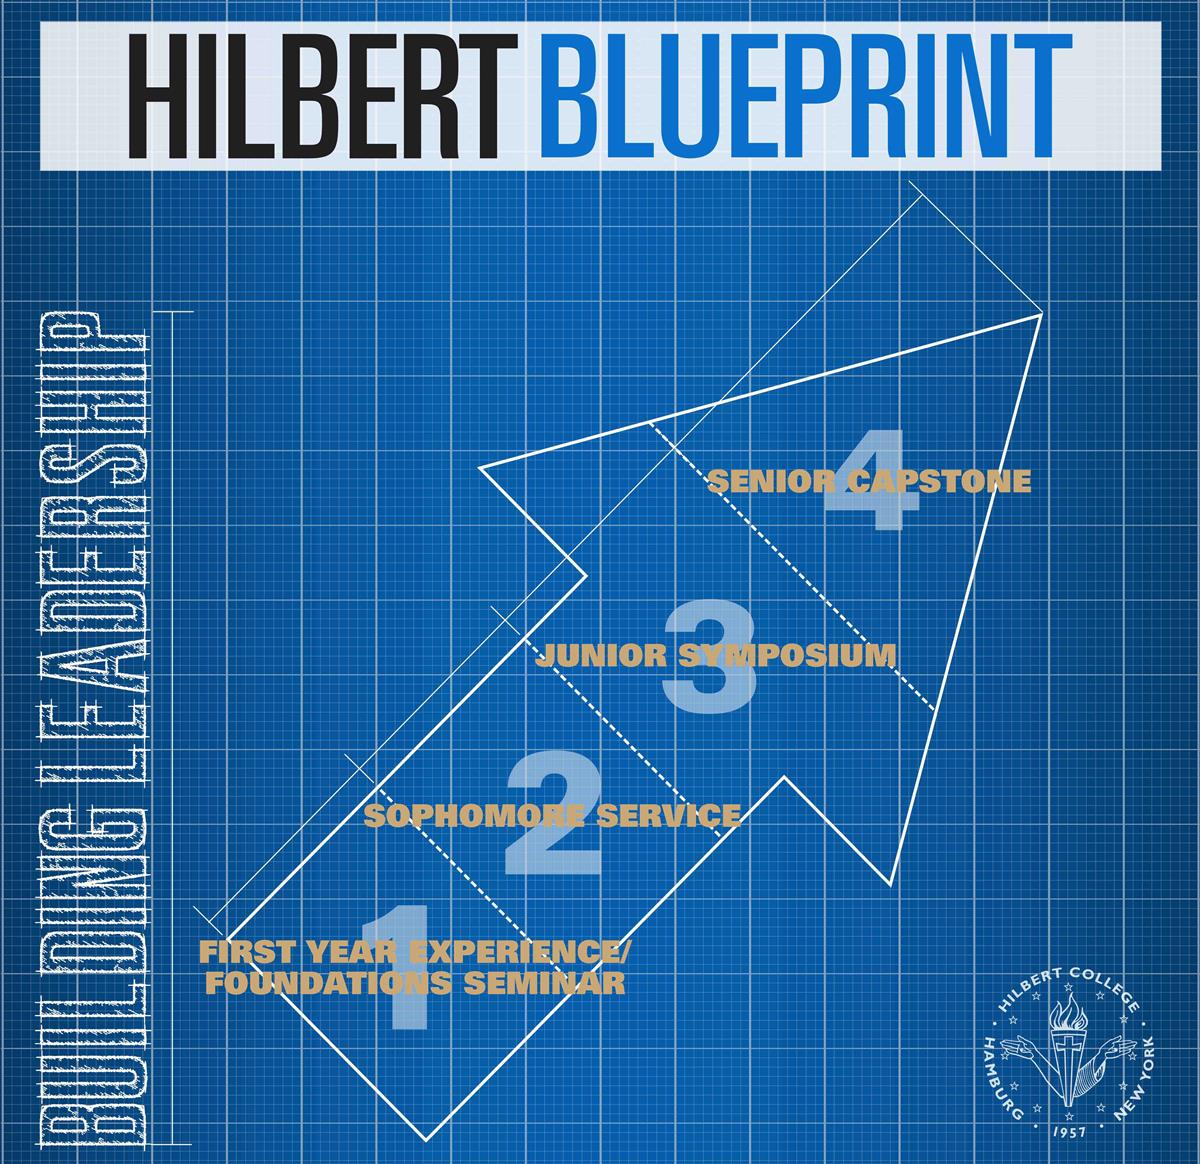 Hilbert blueprint hilbert college hilbert blueprint building leadership malvernweather Images